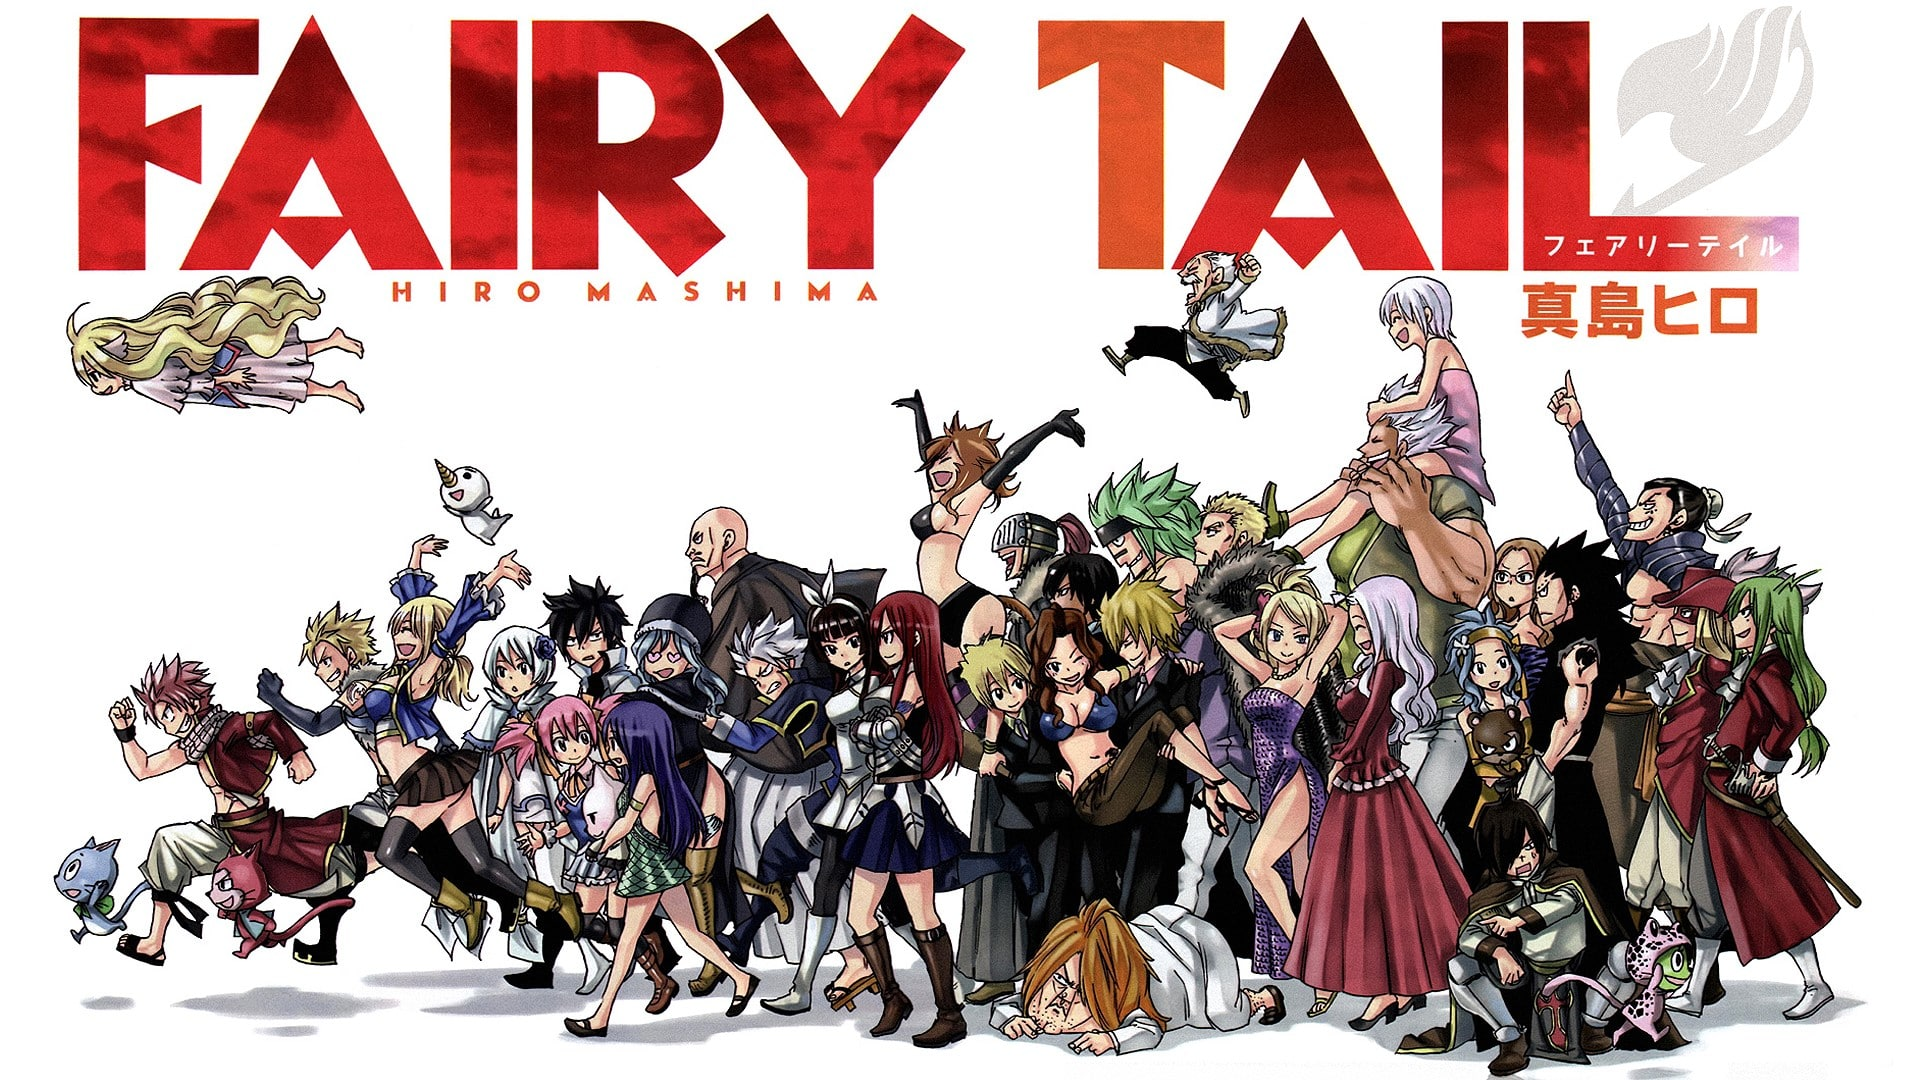 Fairy Tail Hiro Mashima Wallpaper